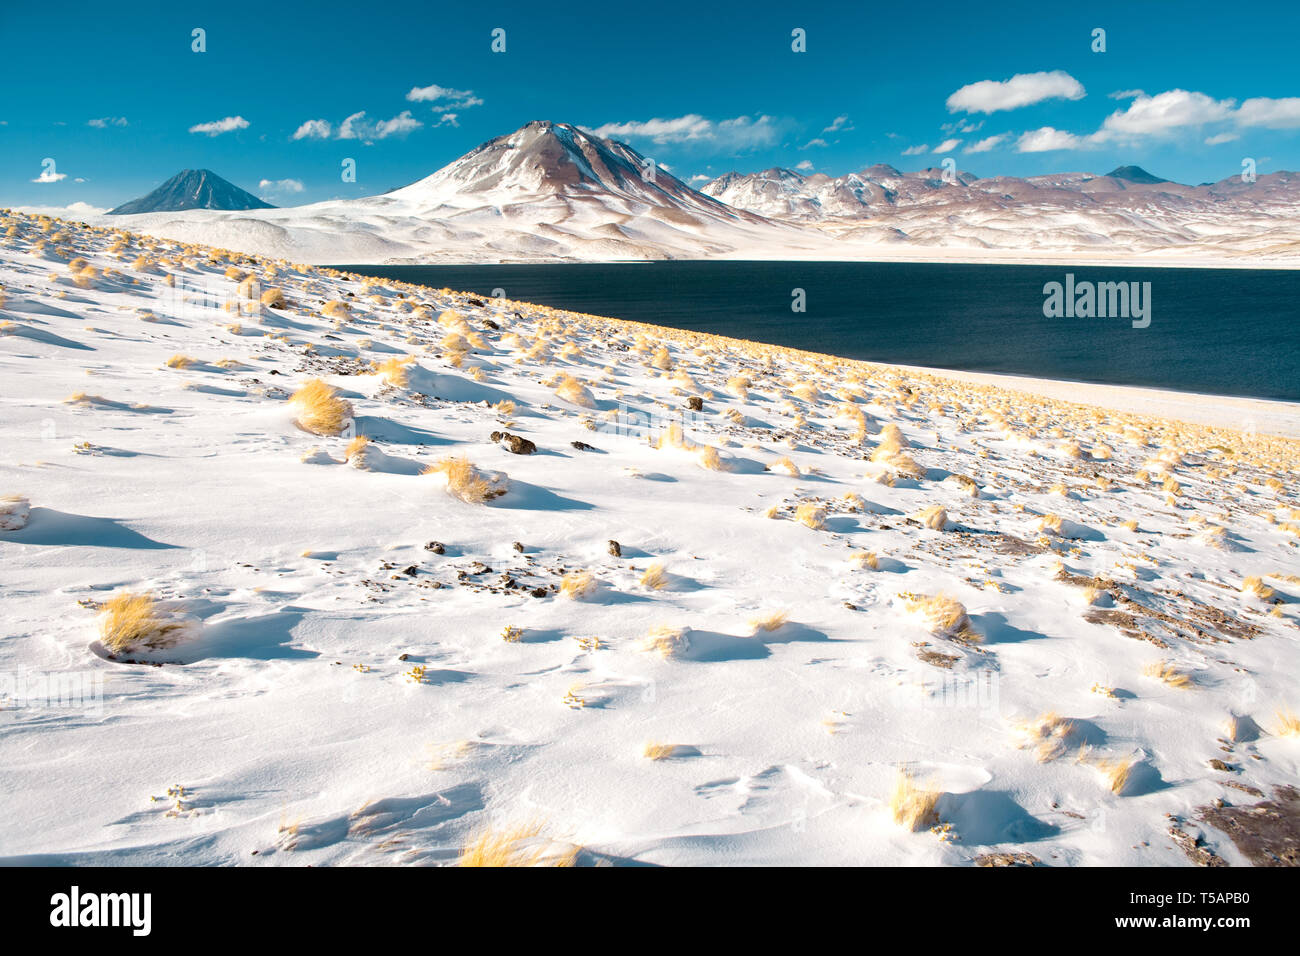 Laguna Miscanti (Miscanti Lagoon) and Cerro Miscanti (Miscanti hill) in the Altiplano (High Andean Plateau) at an altitude of 4350m, Los Flamencos Nat - Stock Image